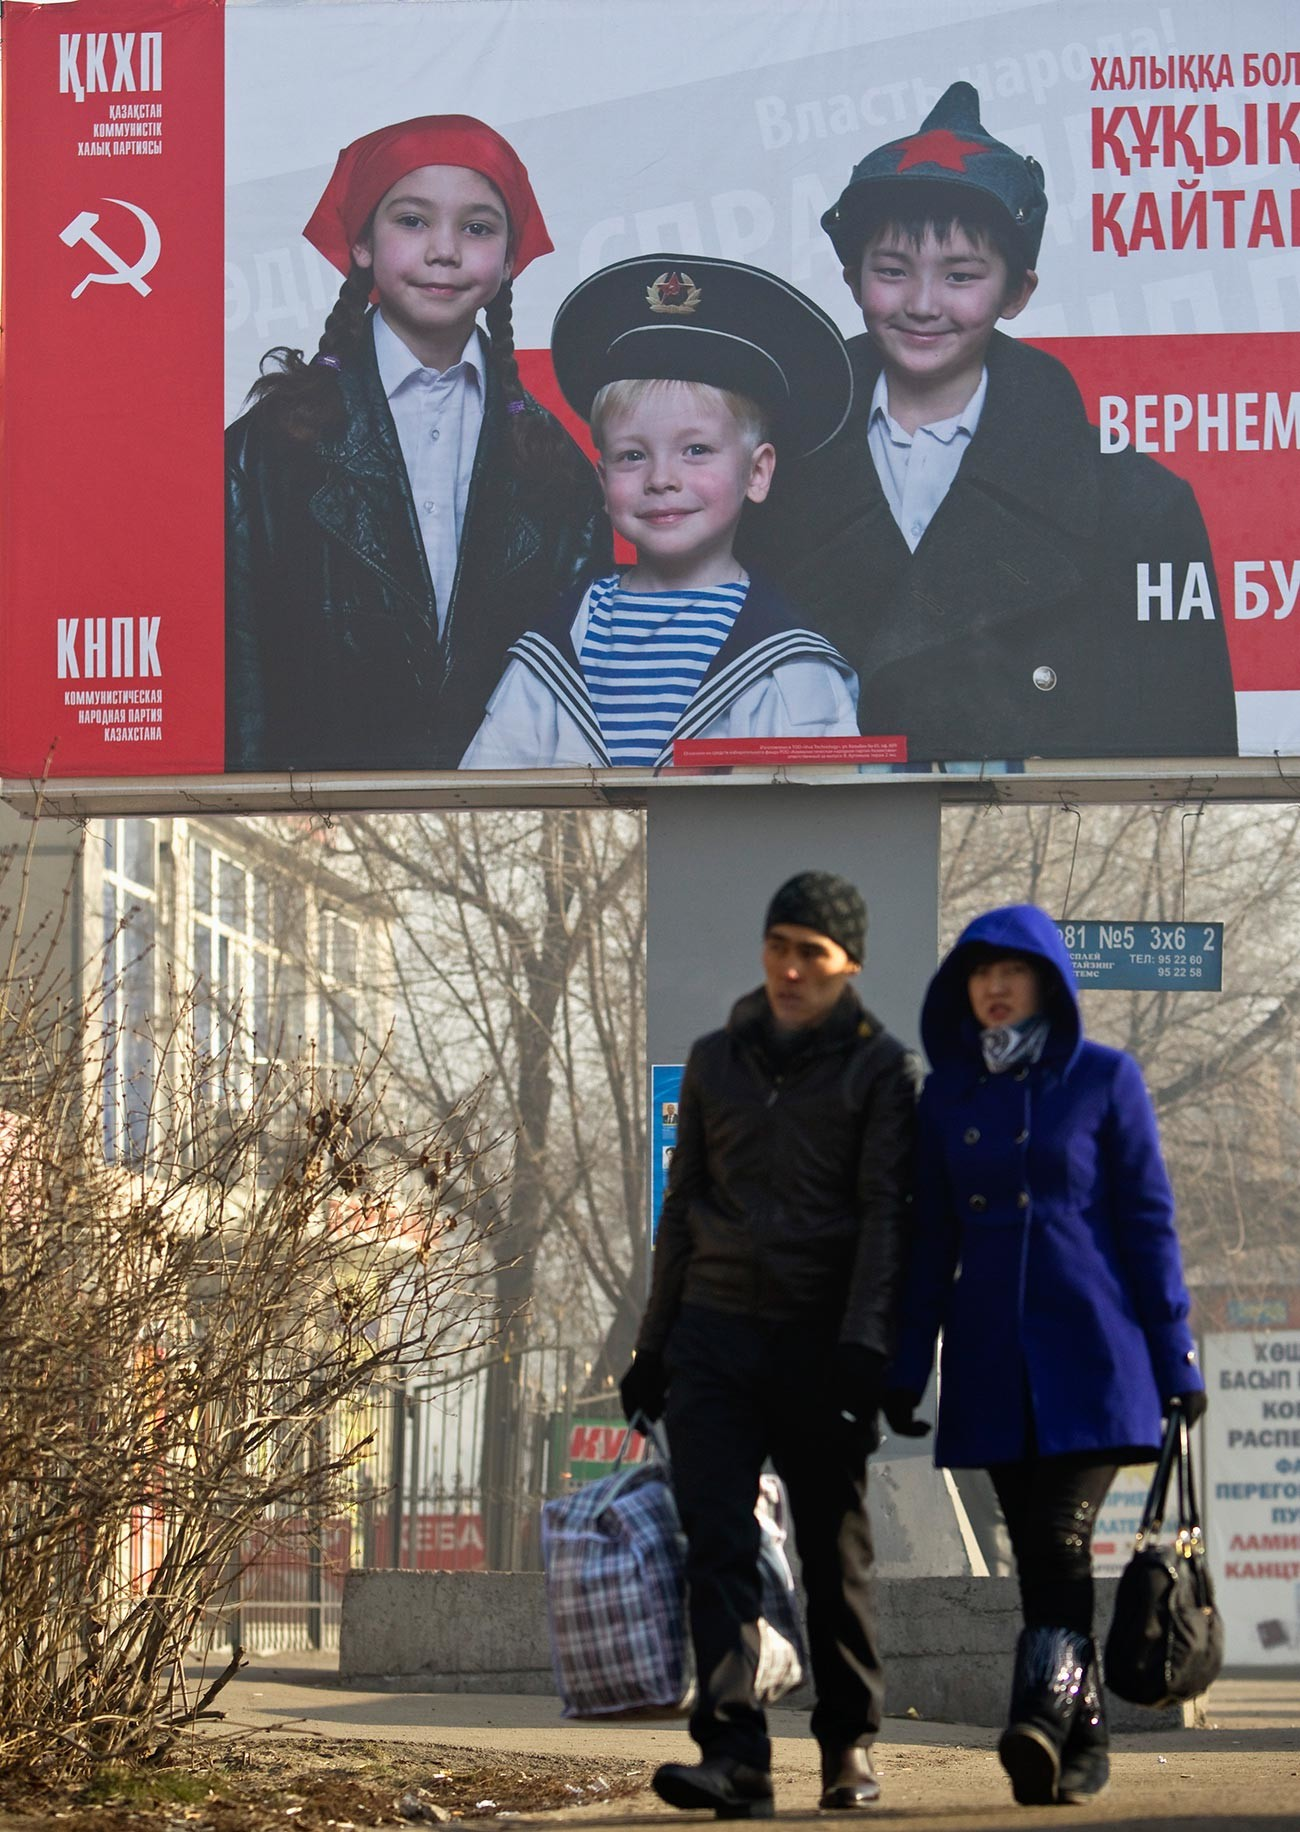 People pass by an election poster of the Communist People's Party of Kazakhstan (CPPK) in Almaty.